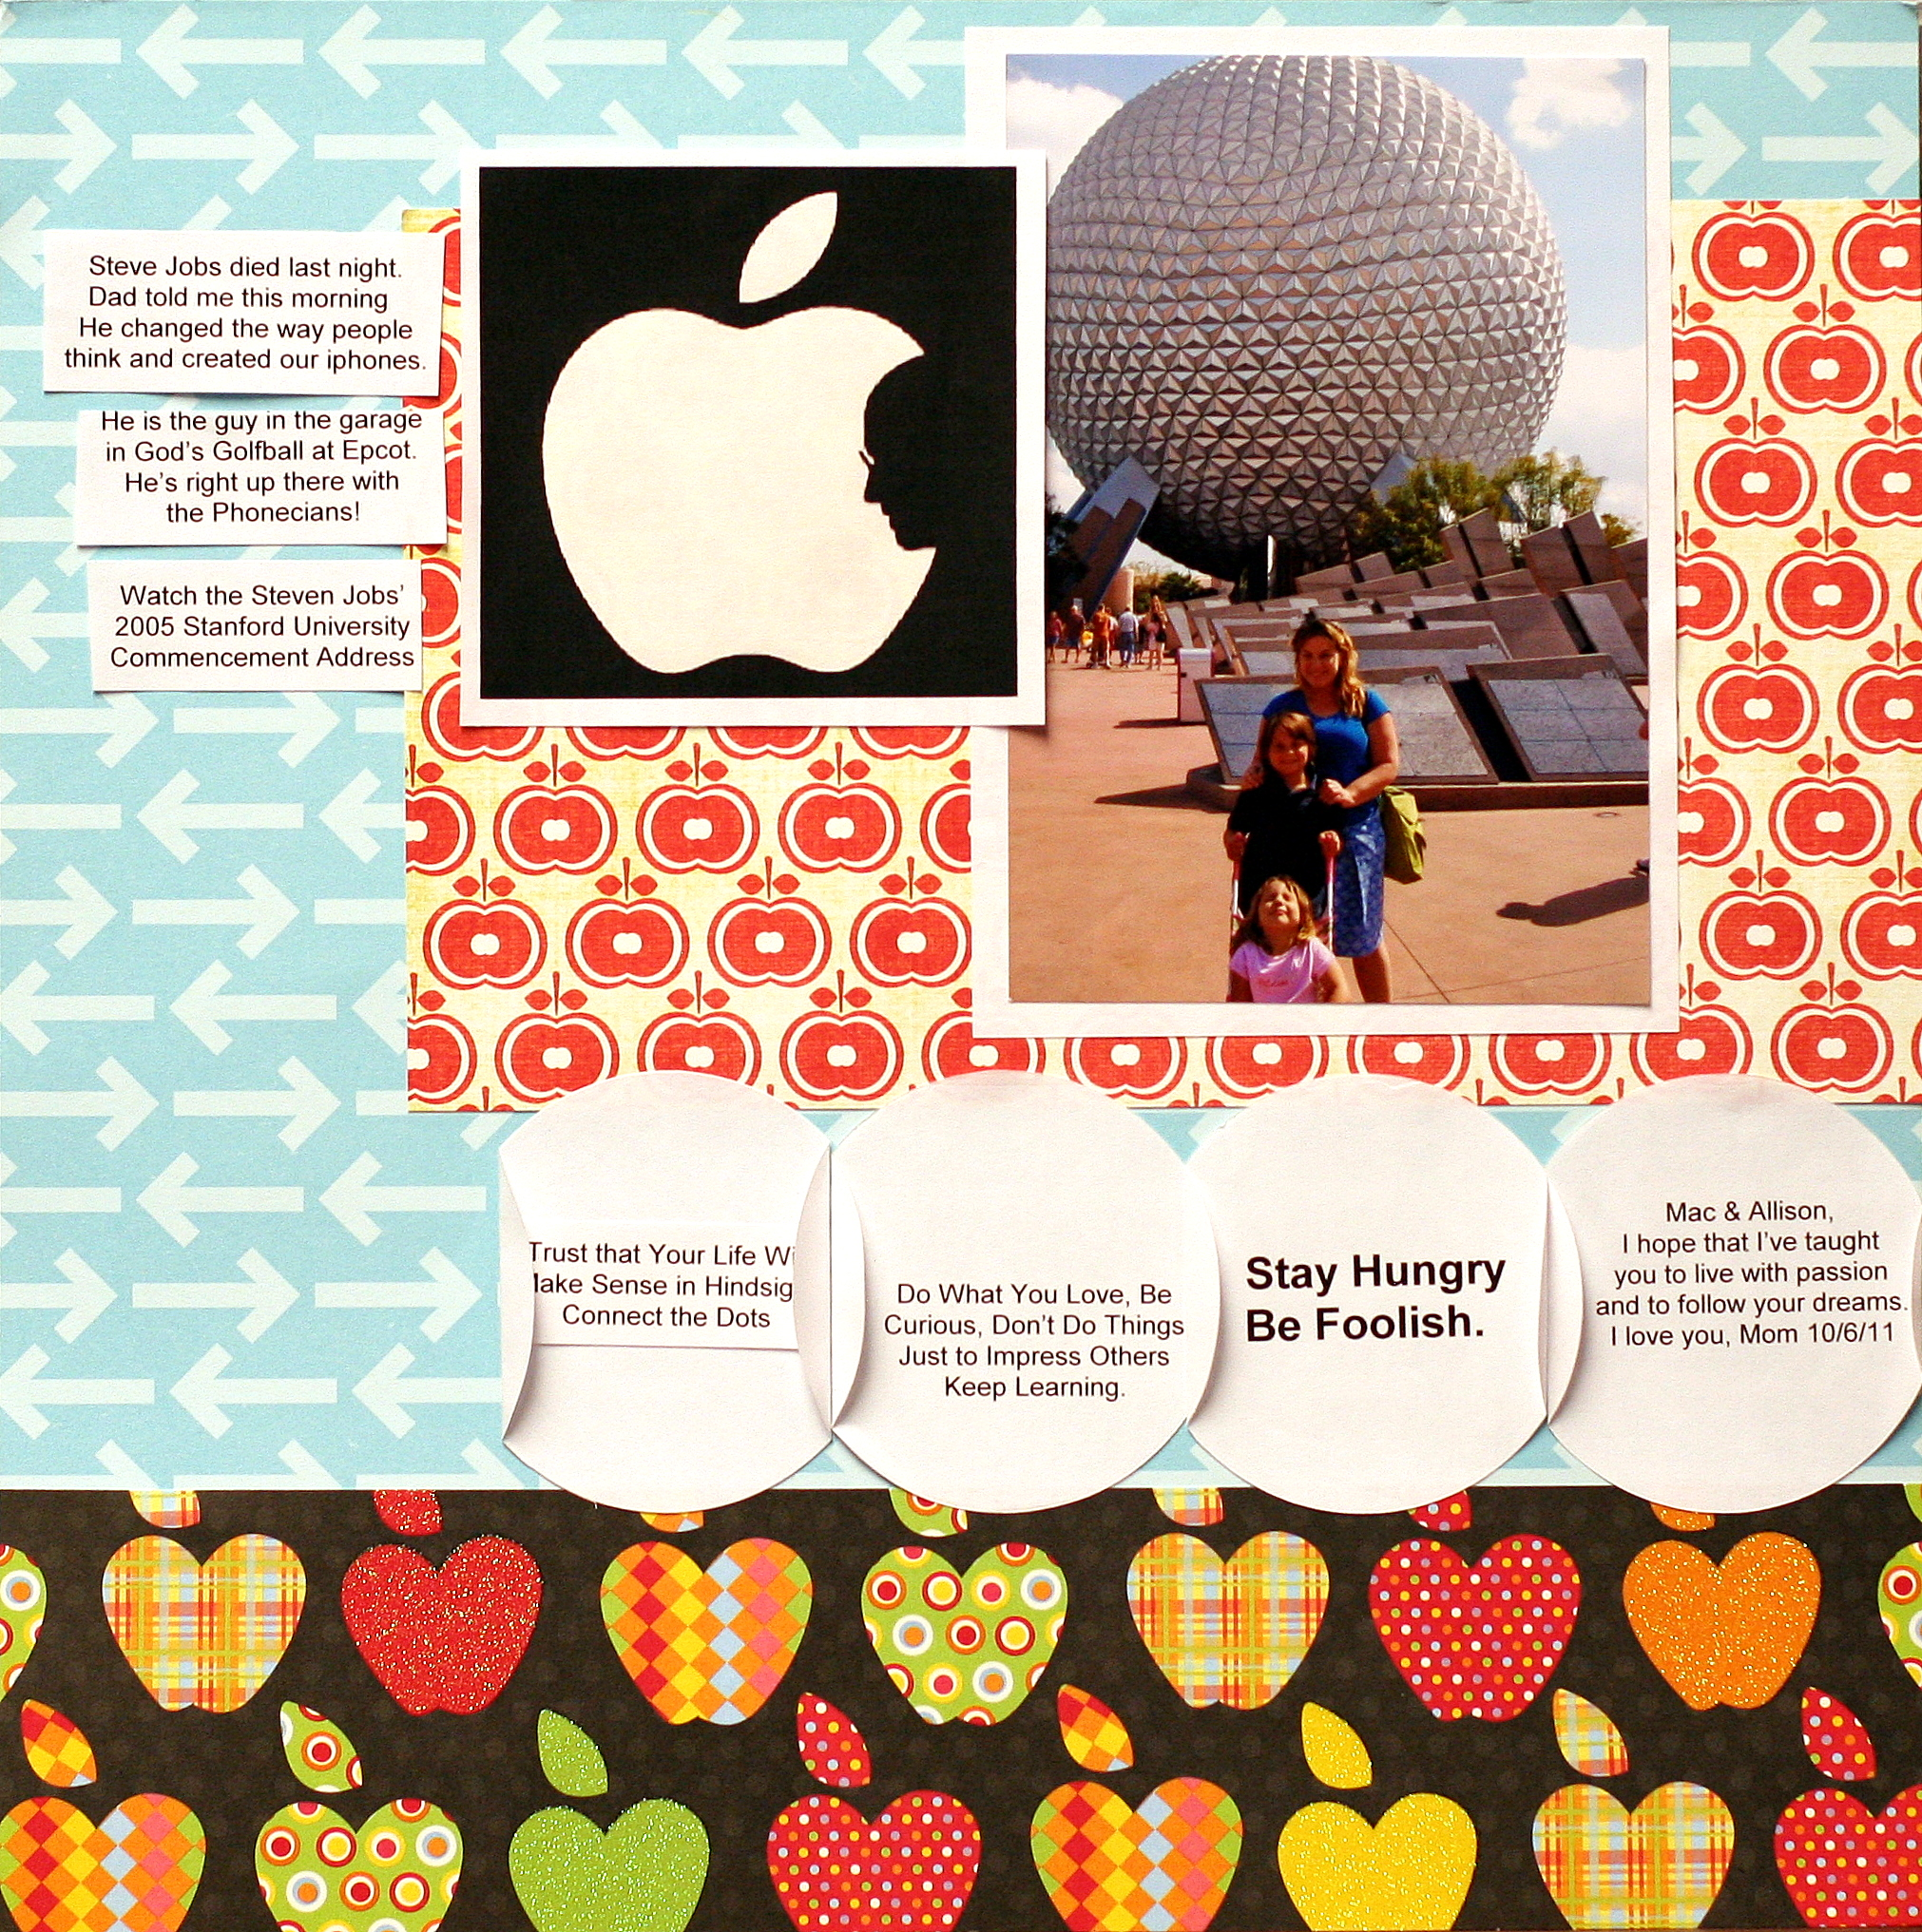 How to scrapbook on a mac - Stay Foolish